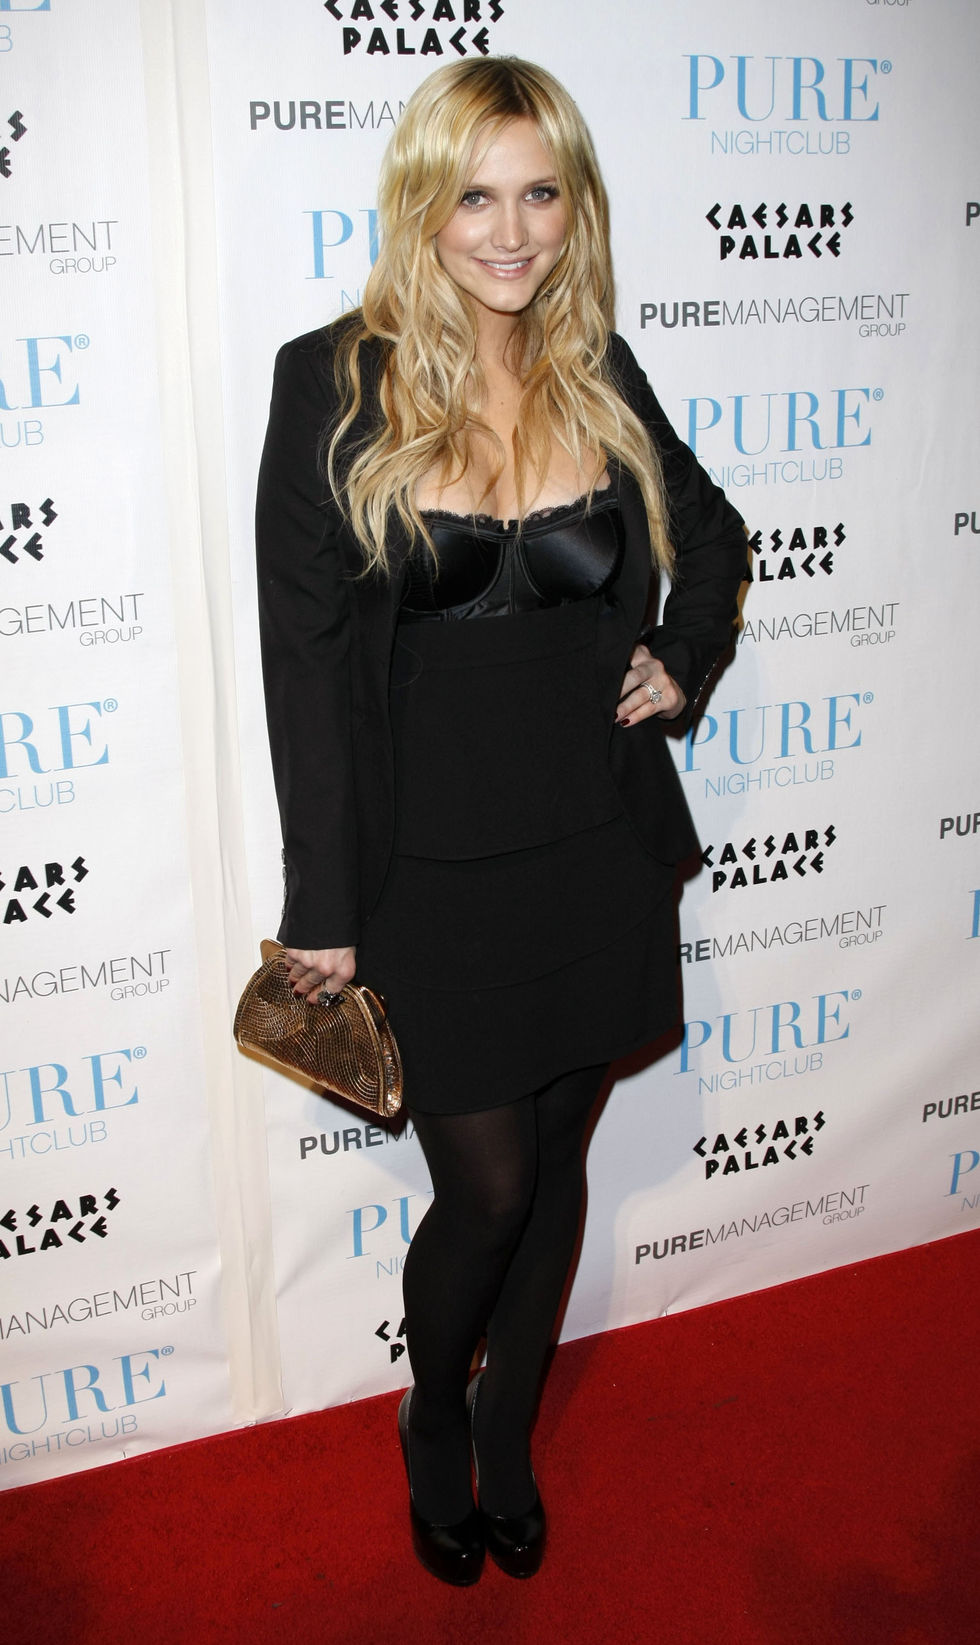 ashlee-simpson-purefection-at-pure-nightclub-in-las-vegas-01